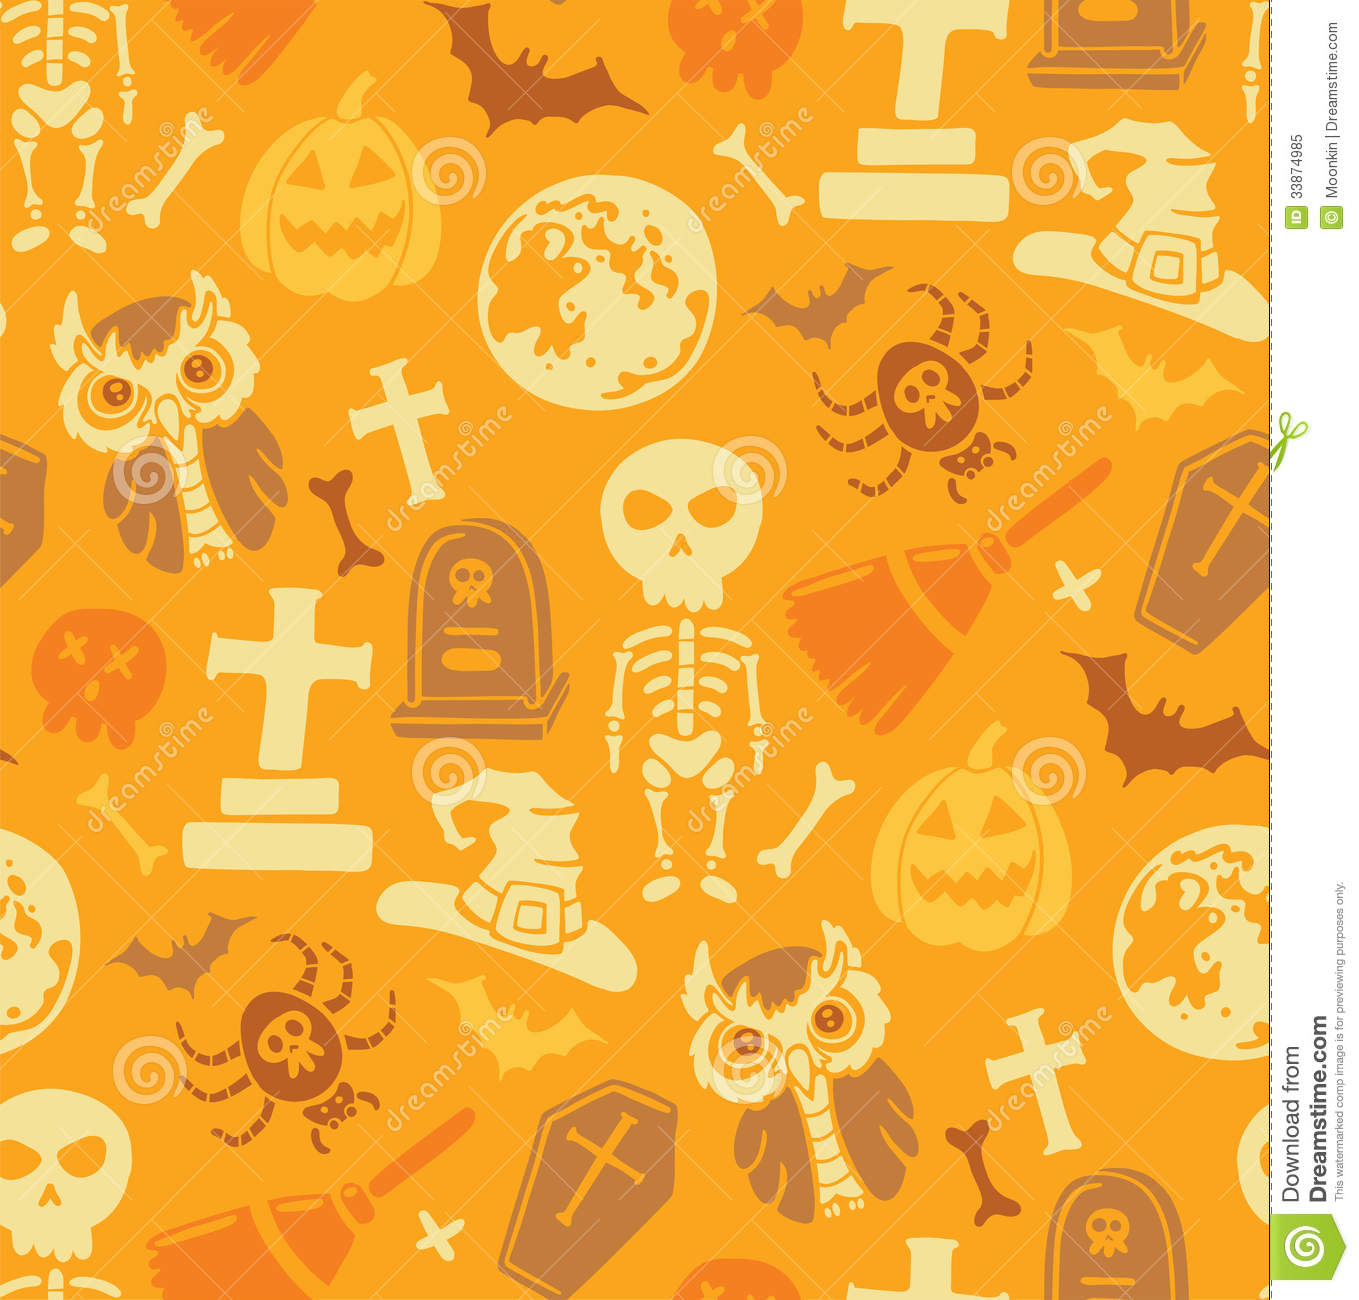 download seamless pattern with halloween objects stock vector illustration of decor background